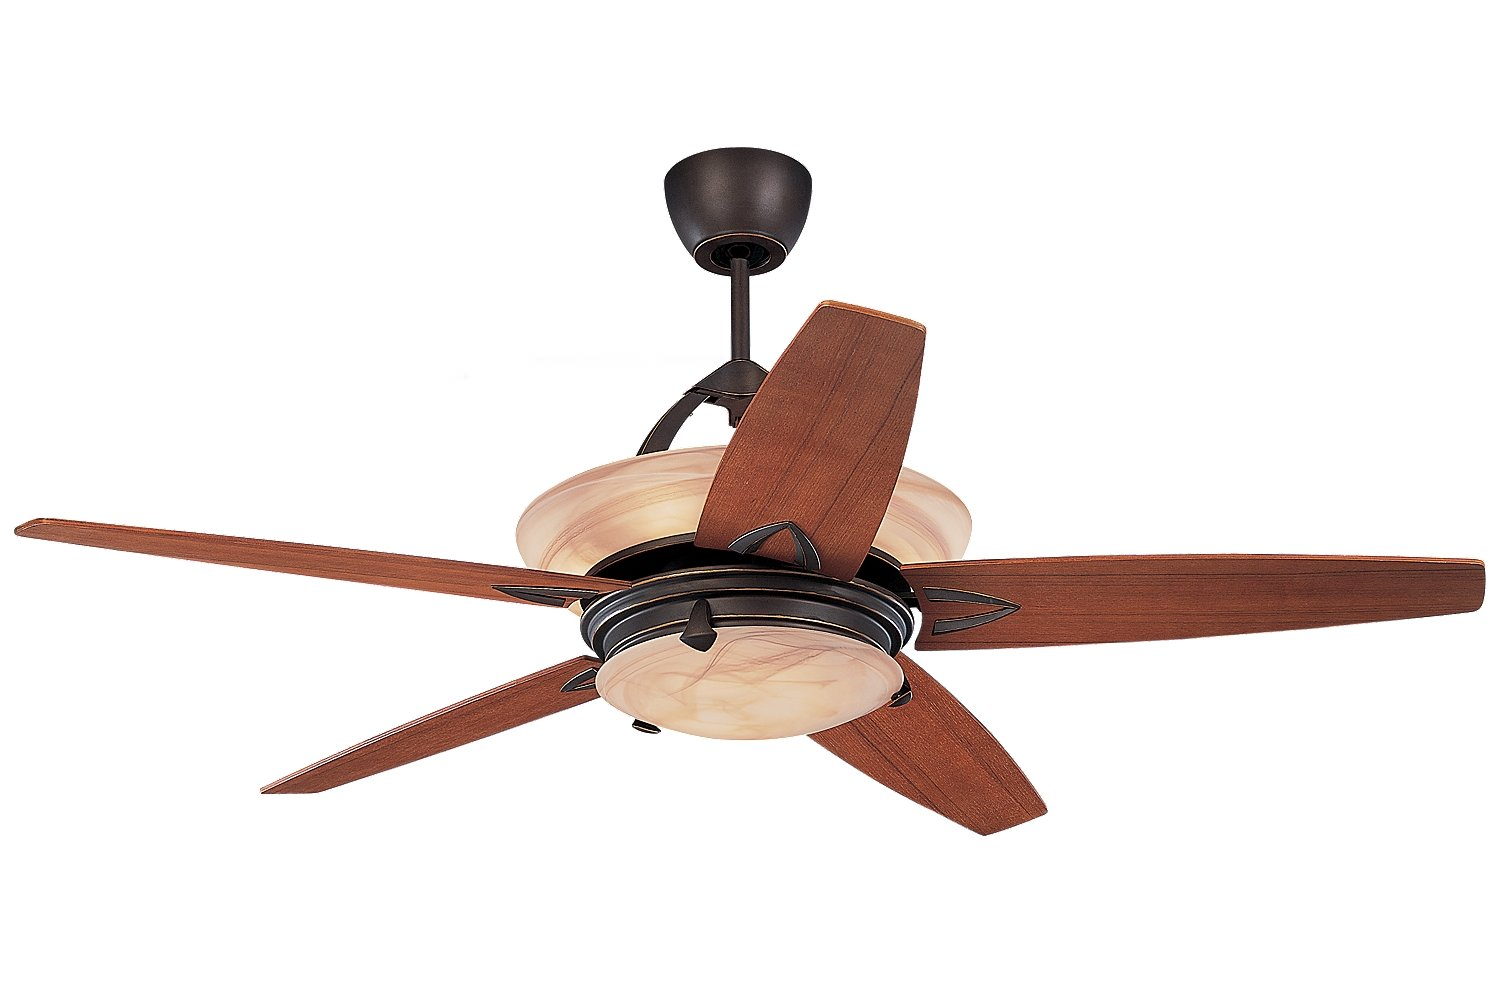 Monte Carlo 5AHR60RBD L Arch Ceiling Fan w Light & Wall or